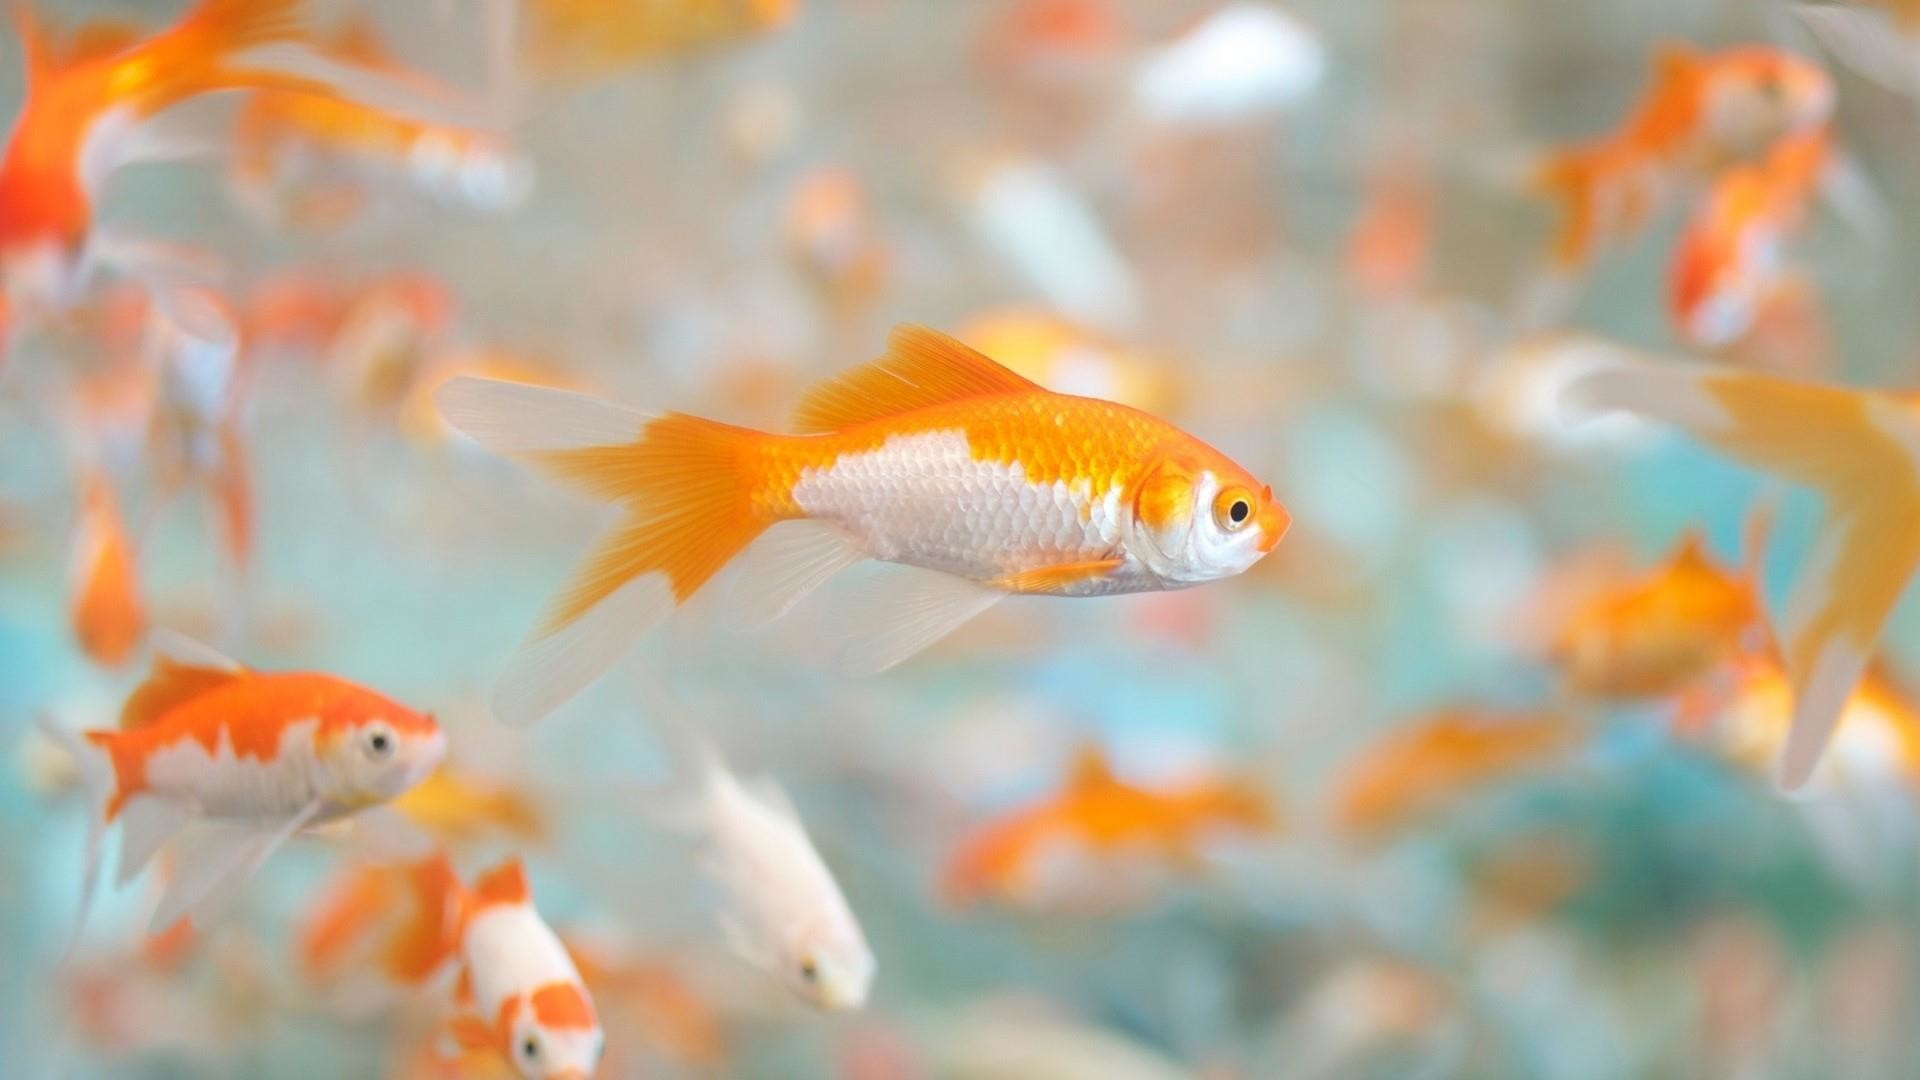 Res: 1920x1080, Goldfish (Carassius Auratus) Wallpaper | Wallpaper Studio 10 | Tens of  thousands HD and UltraHD wallpapers for Android, Windows and Xbox